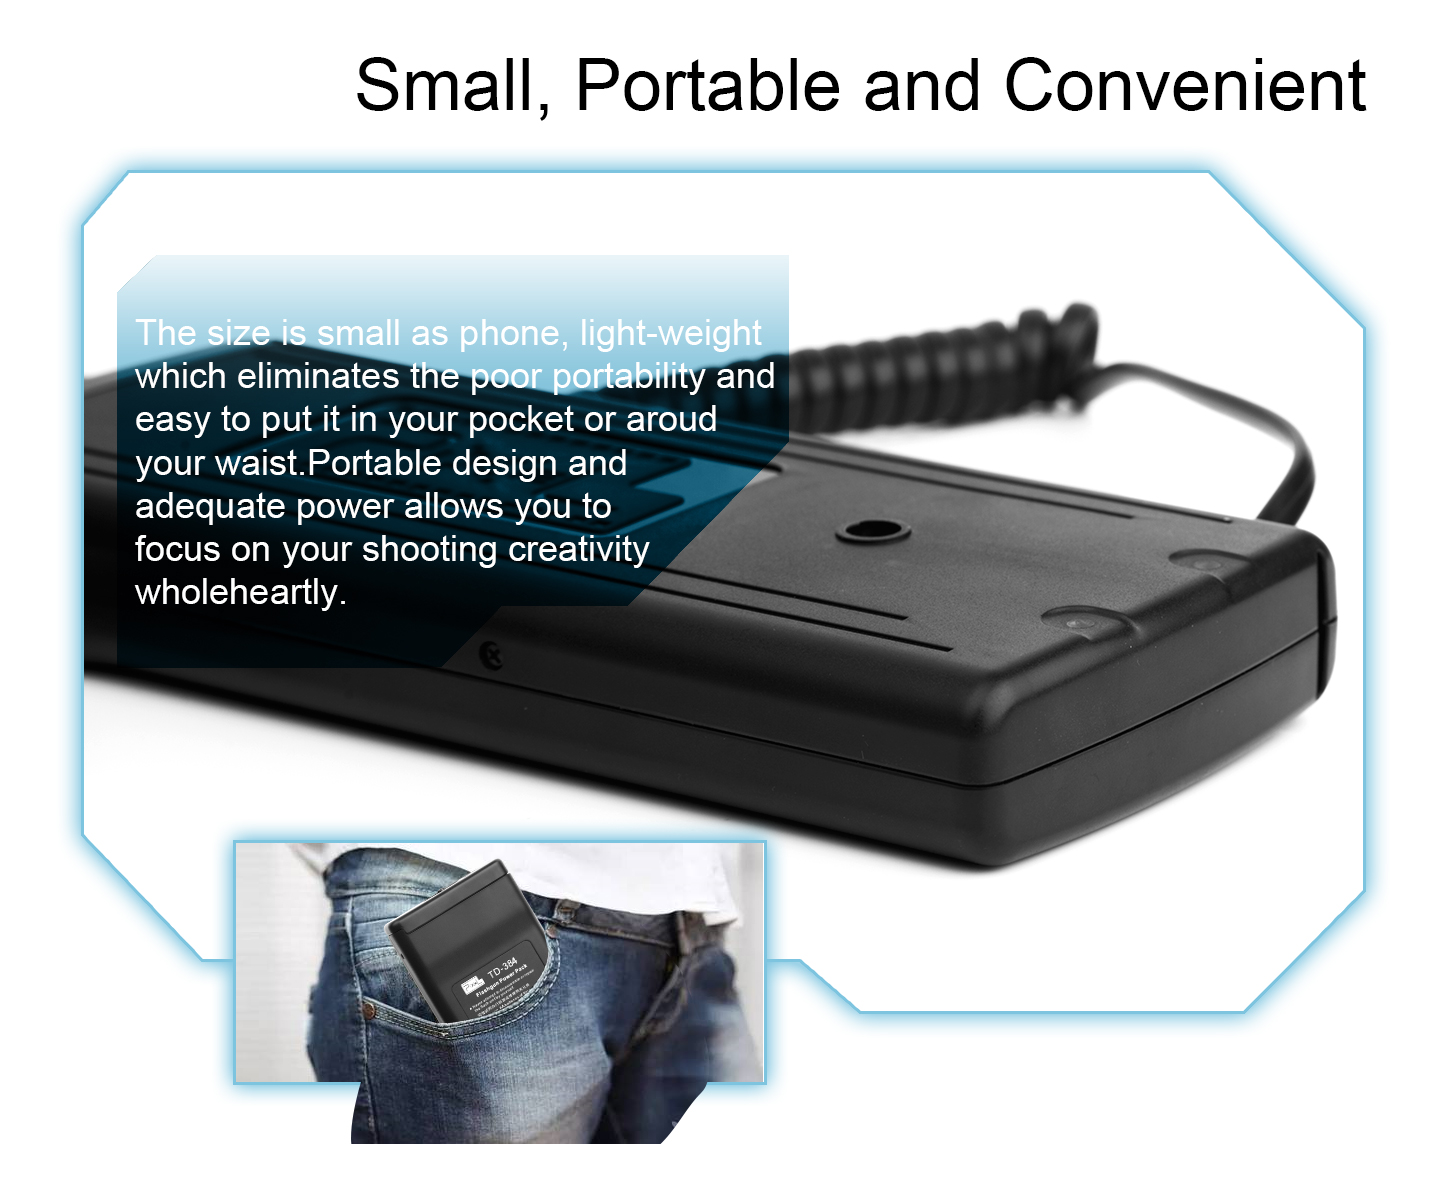 Small, Portable and Convenient